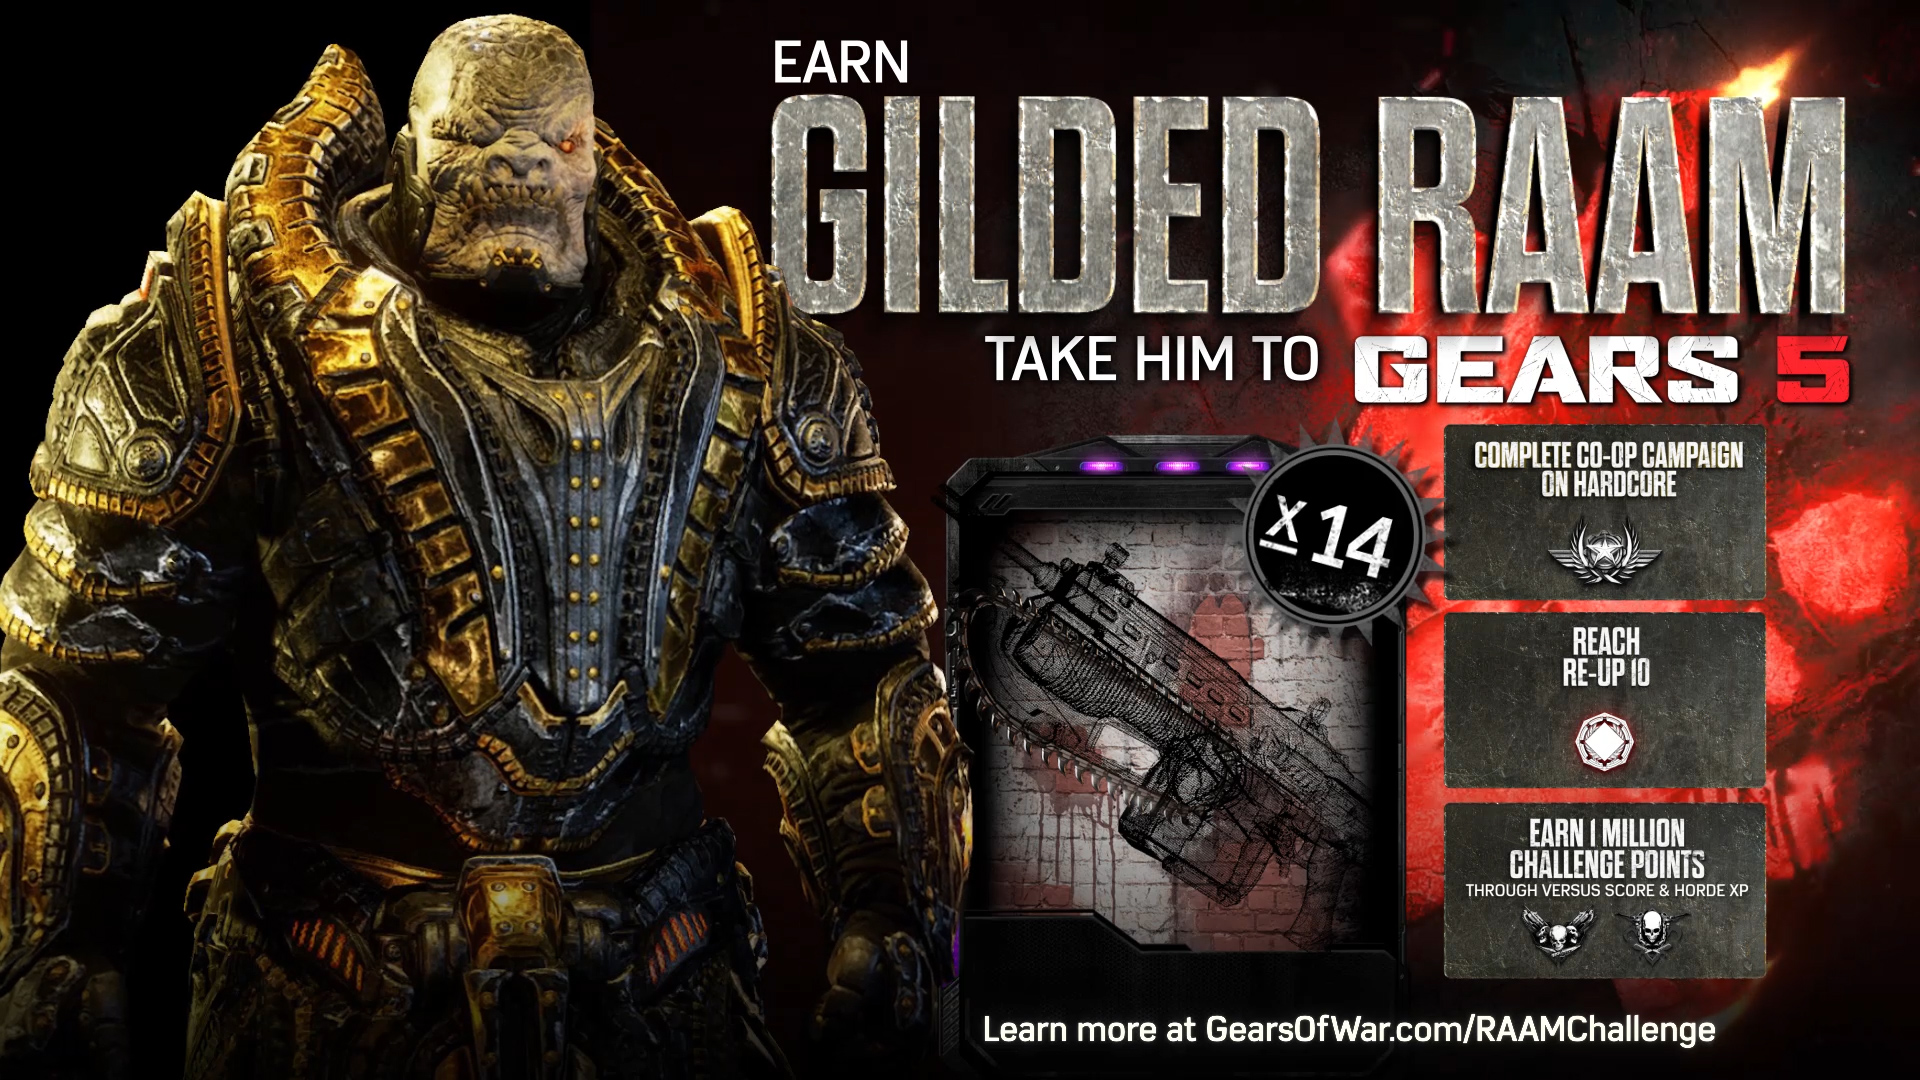 Gears of War 4 - Gilded RAAM Challenge Trailer